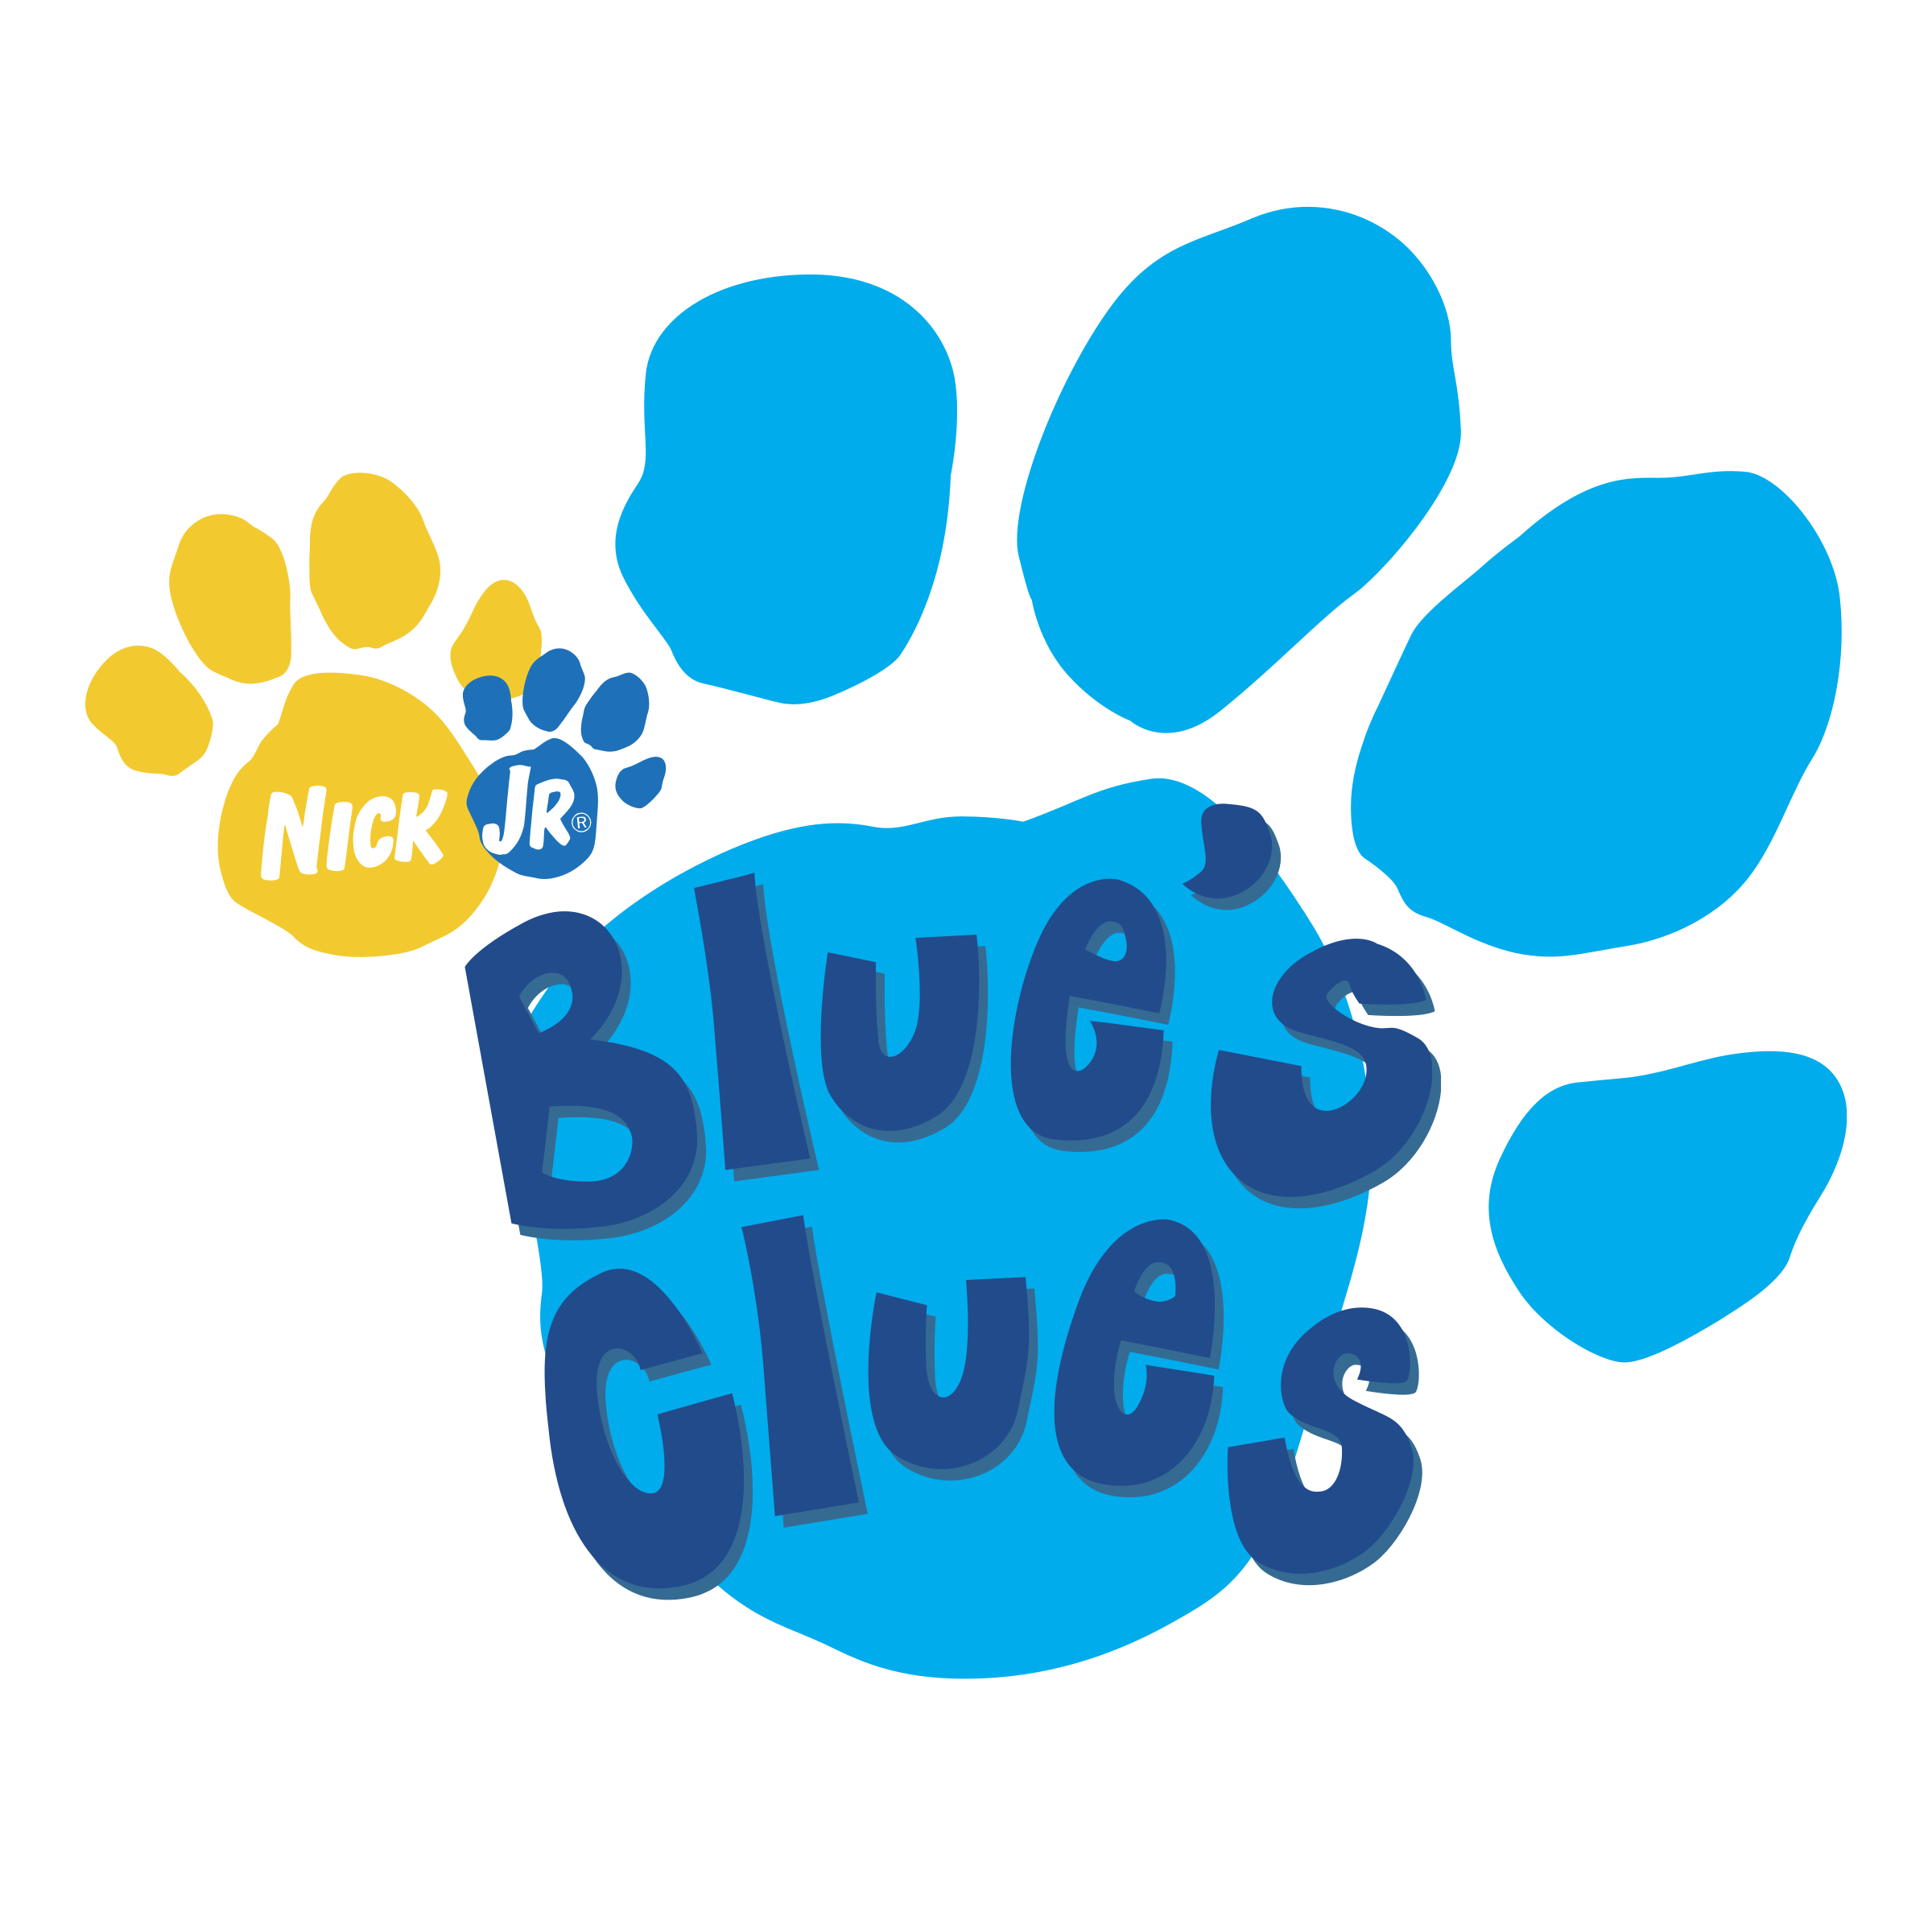 Blues clip svg. Blue s clues logo